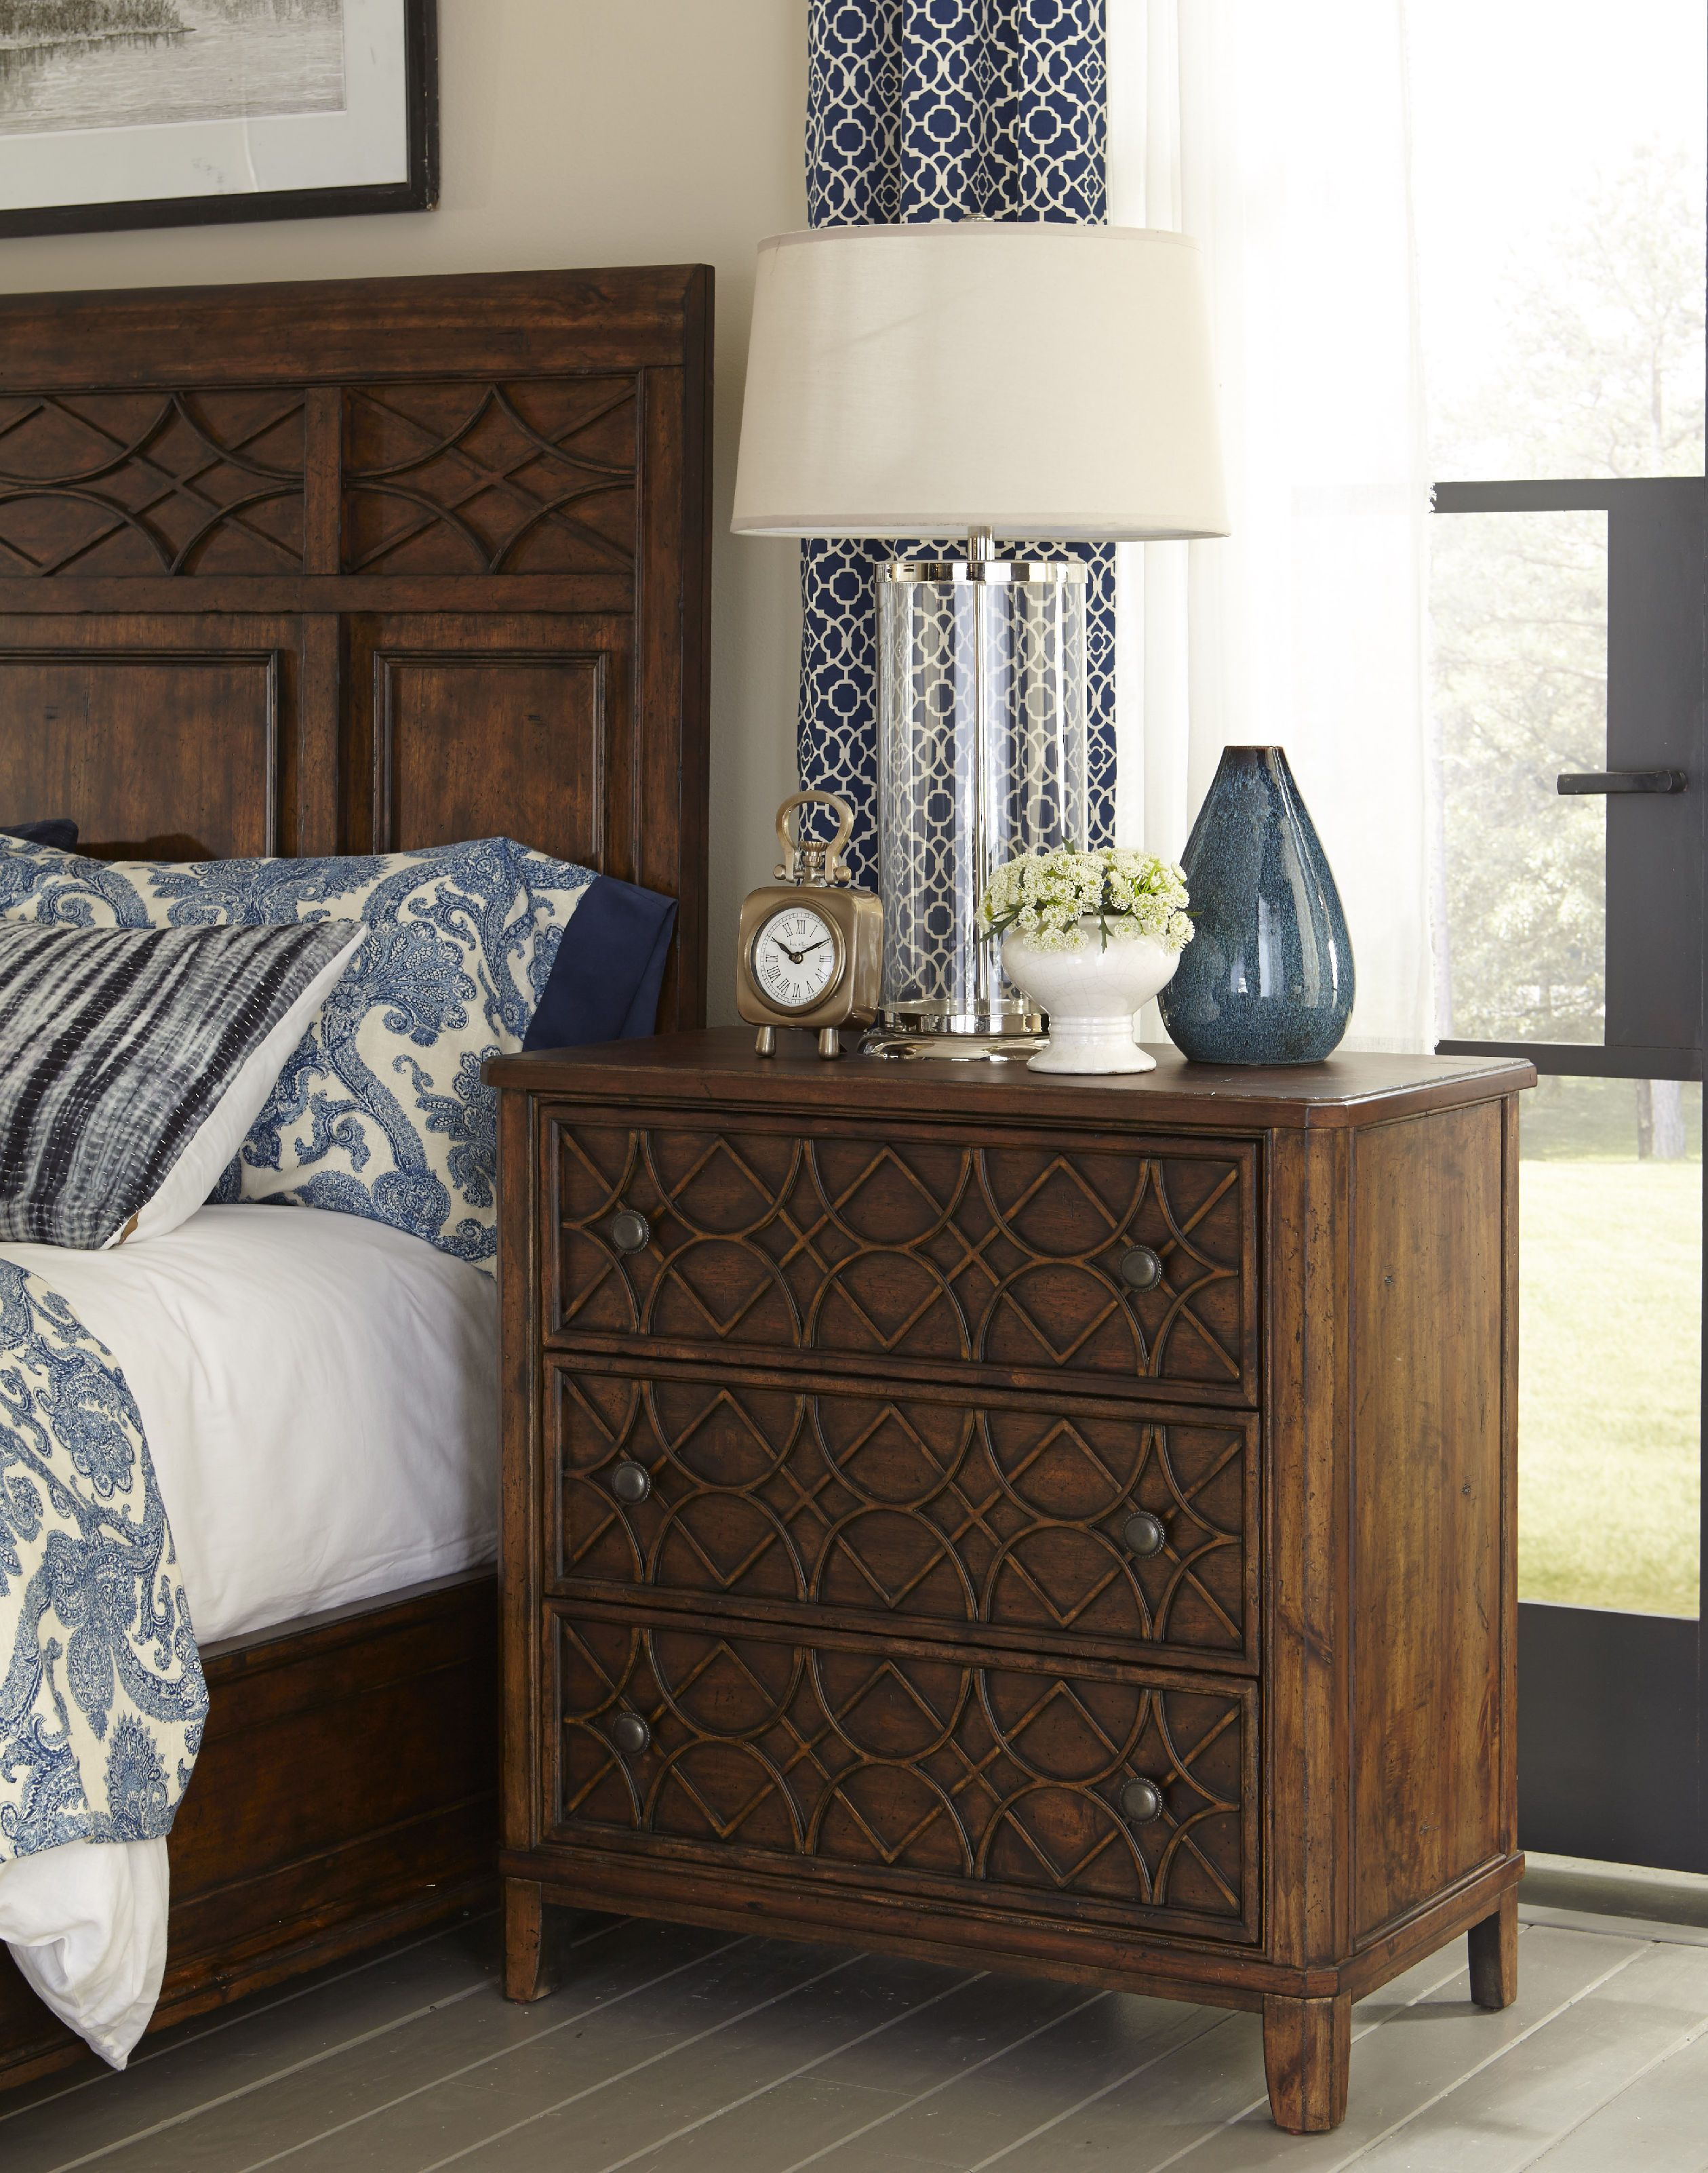 Trisha Yearwood Bedroom I Remember You Night Stand In 2019